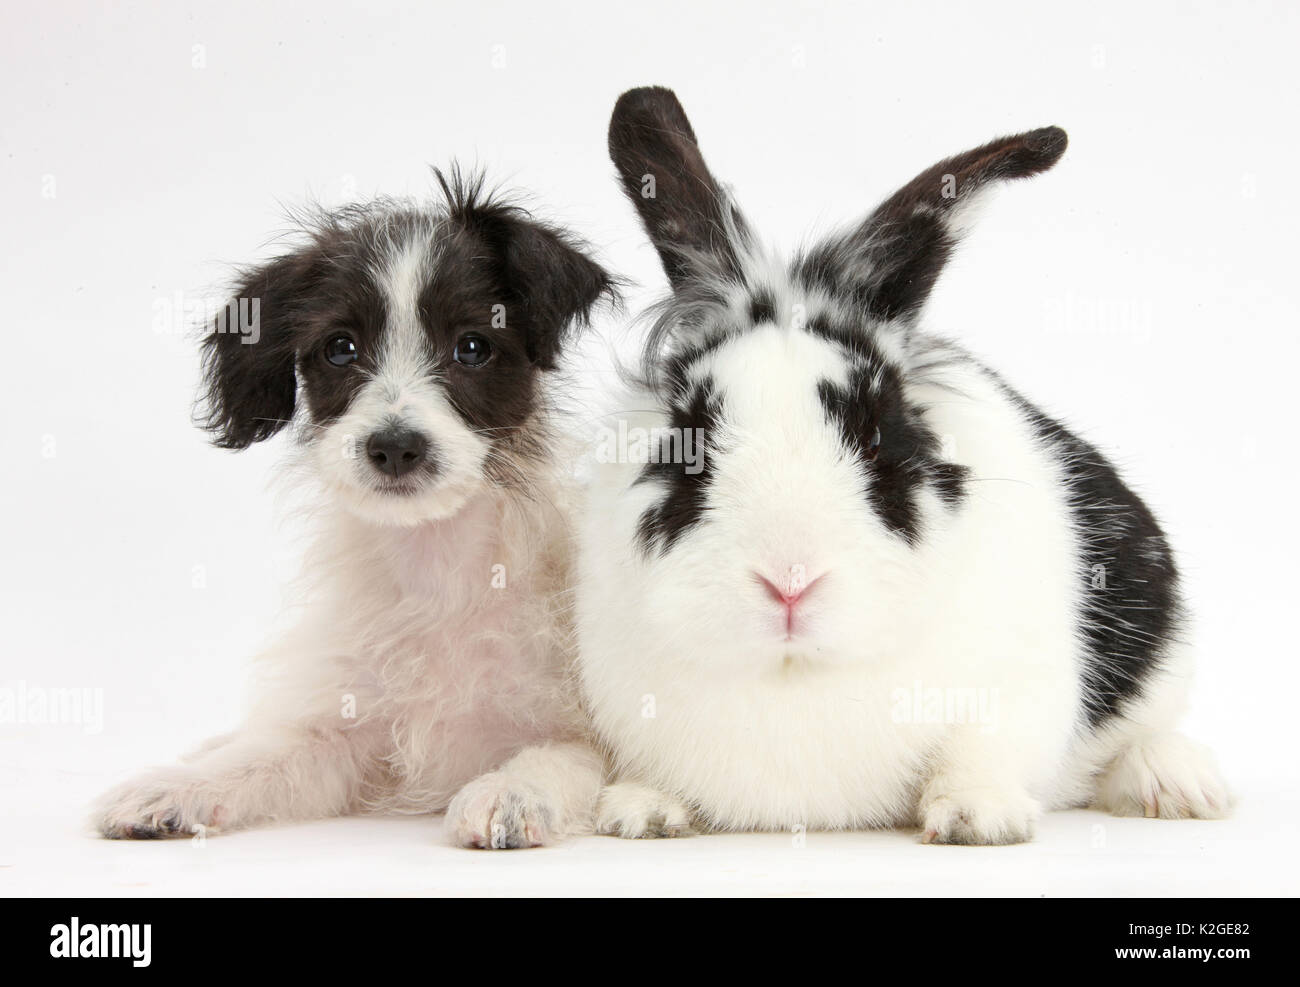 Black-and-white Jack-a-poo, Jack Russell cross Poodle puppy age 8 weeks, with black and white rabbit. - Stock Image